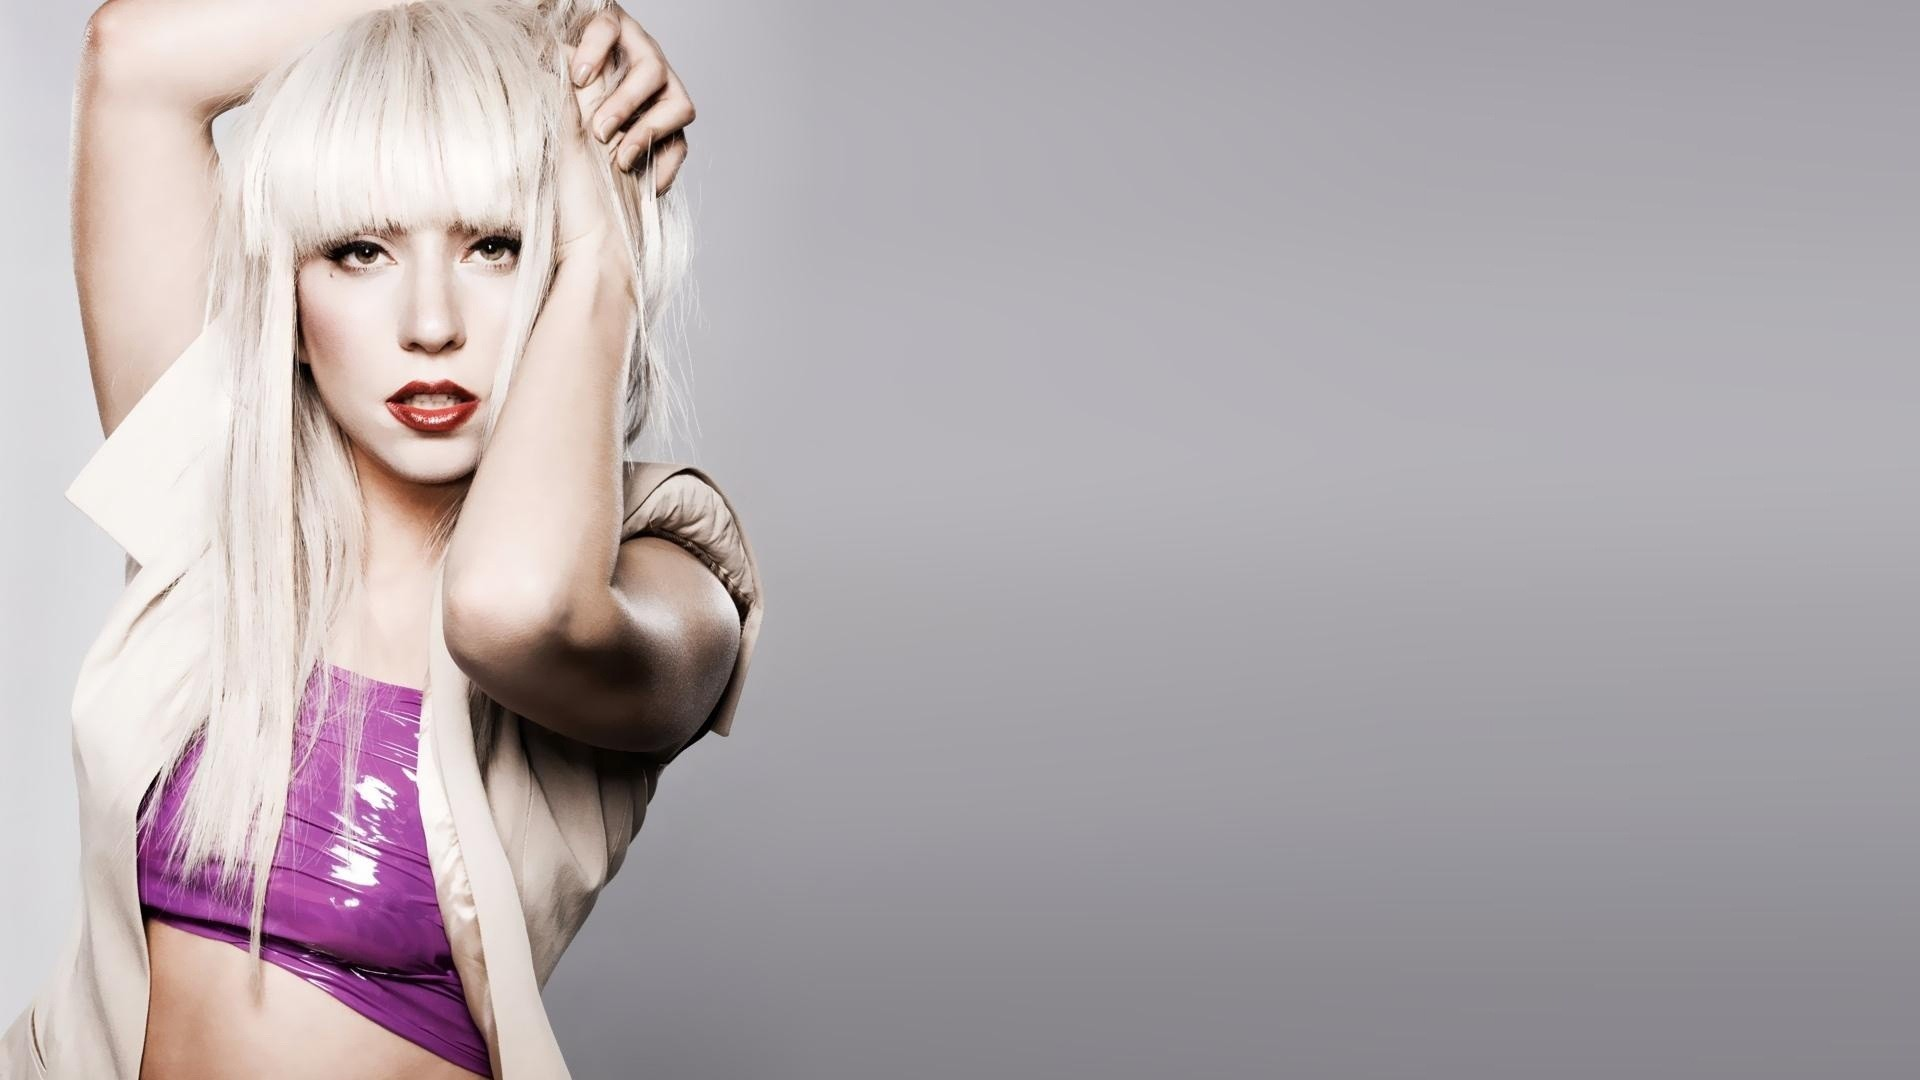 blondes woman lady gaga HD Wallpaper